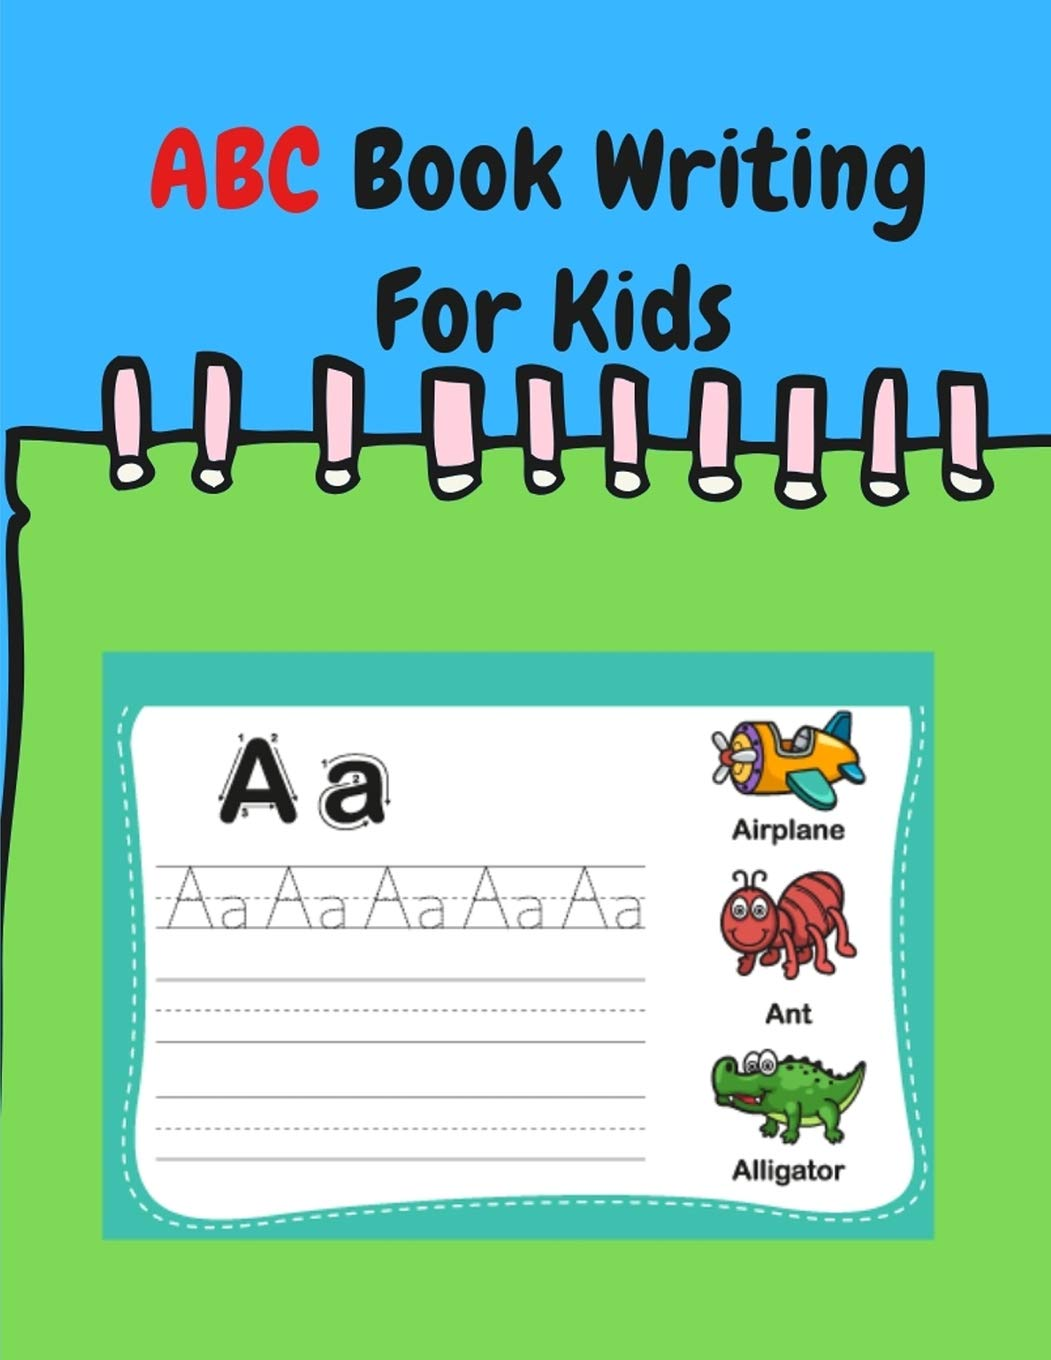 Abc Book Writing For Kids Coloring Books For Toddlers Abc Abc Books For Preschoolers Learning Kid A 9781798536148 Amazon Com Books